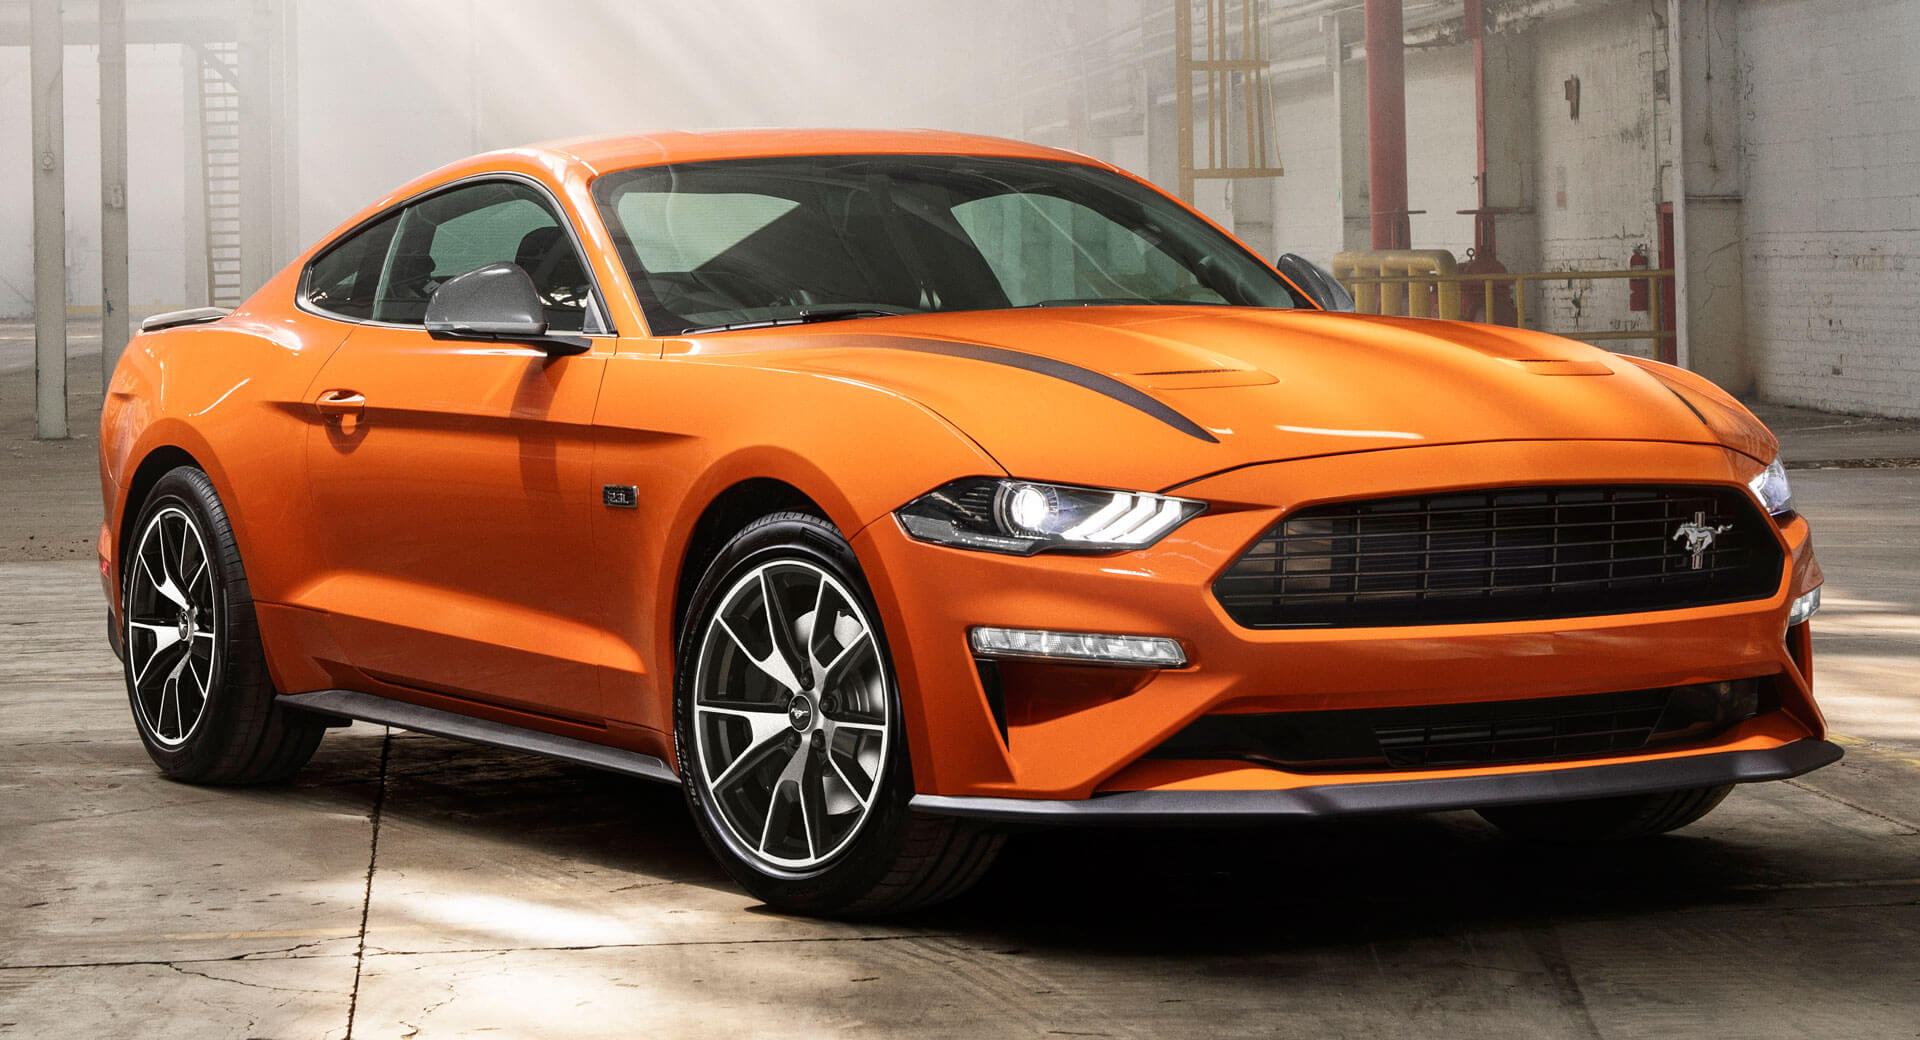 Ford Mustang one of the most Instagram able or Insta-worthy cars among on social media